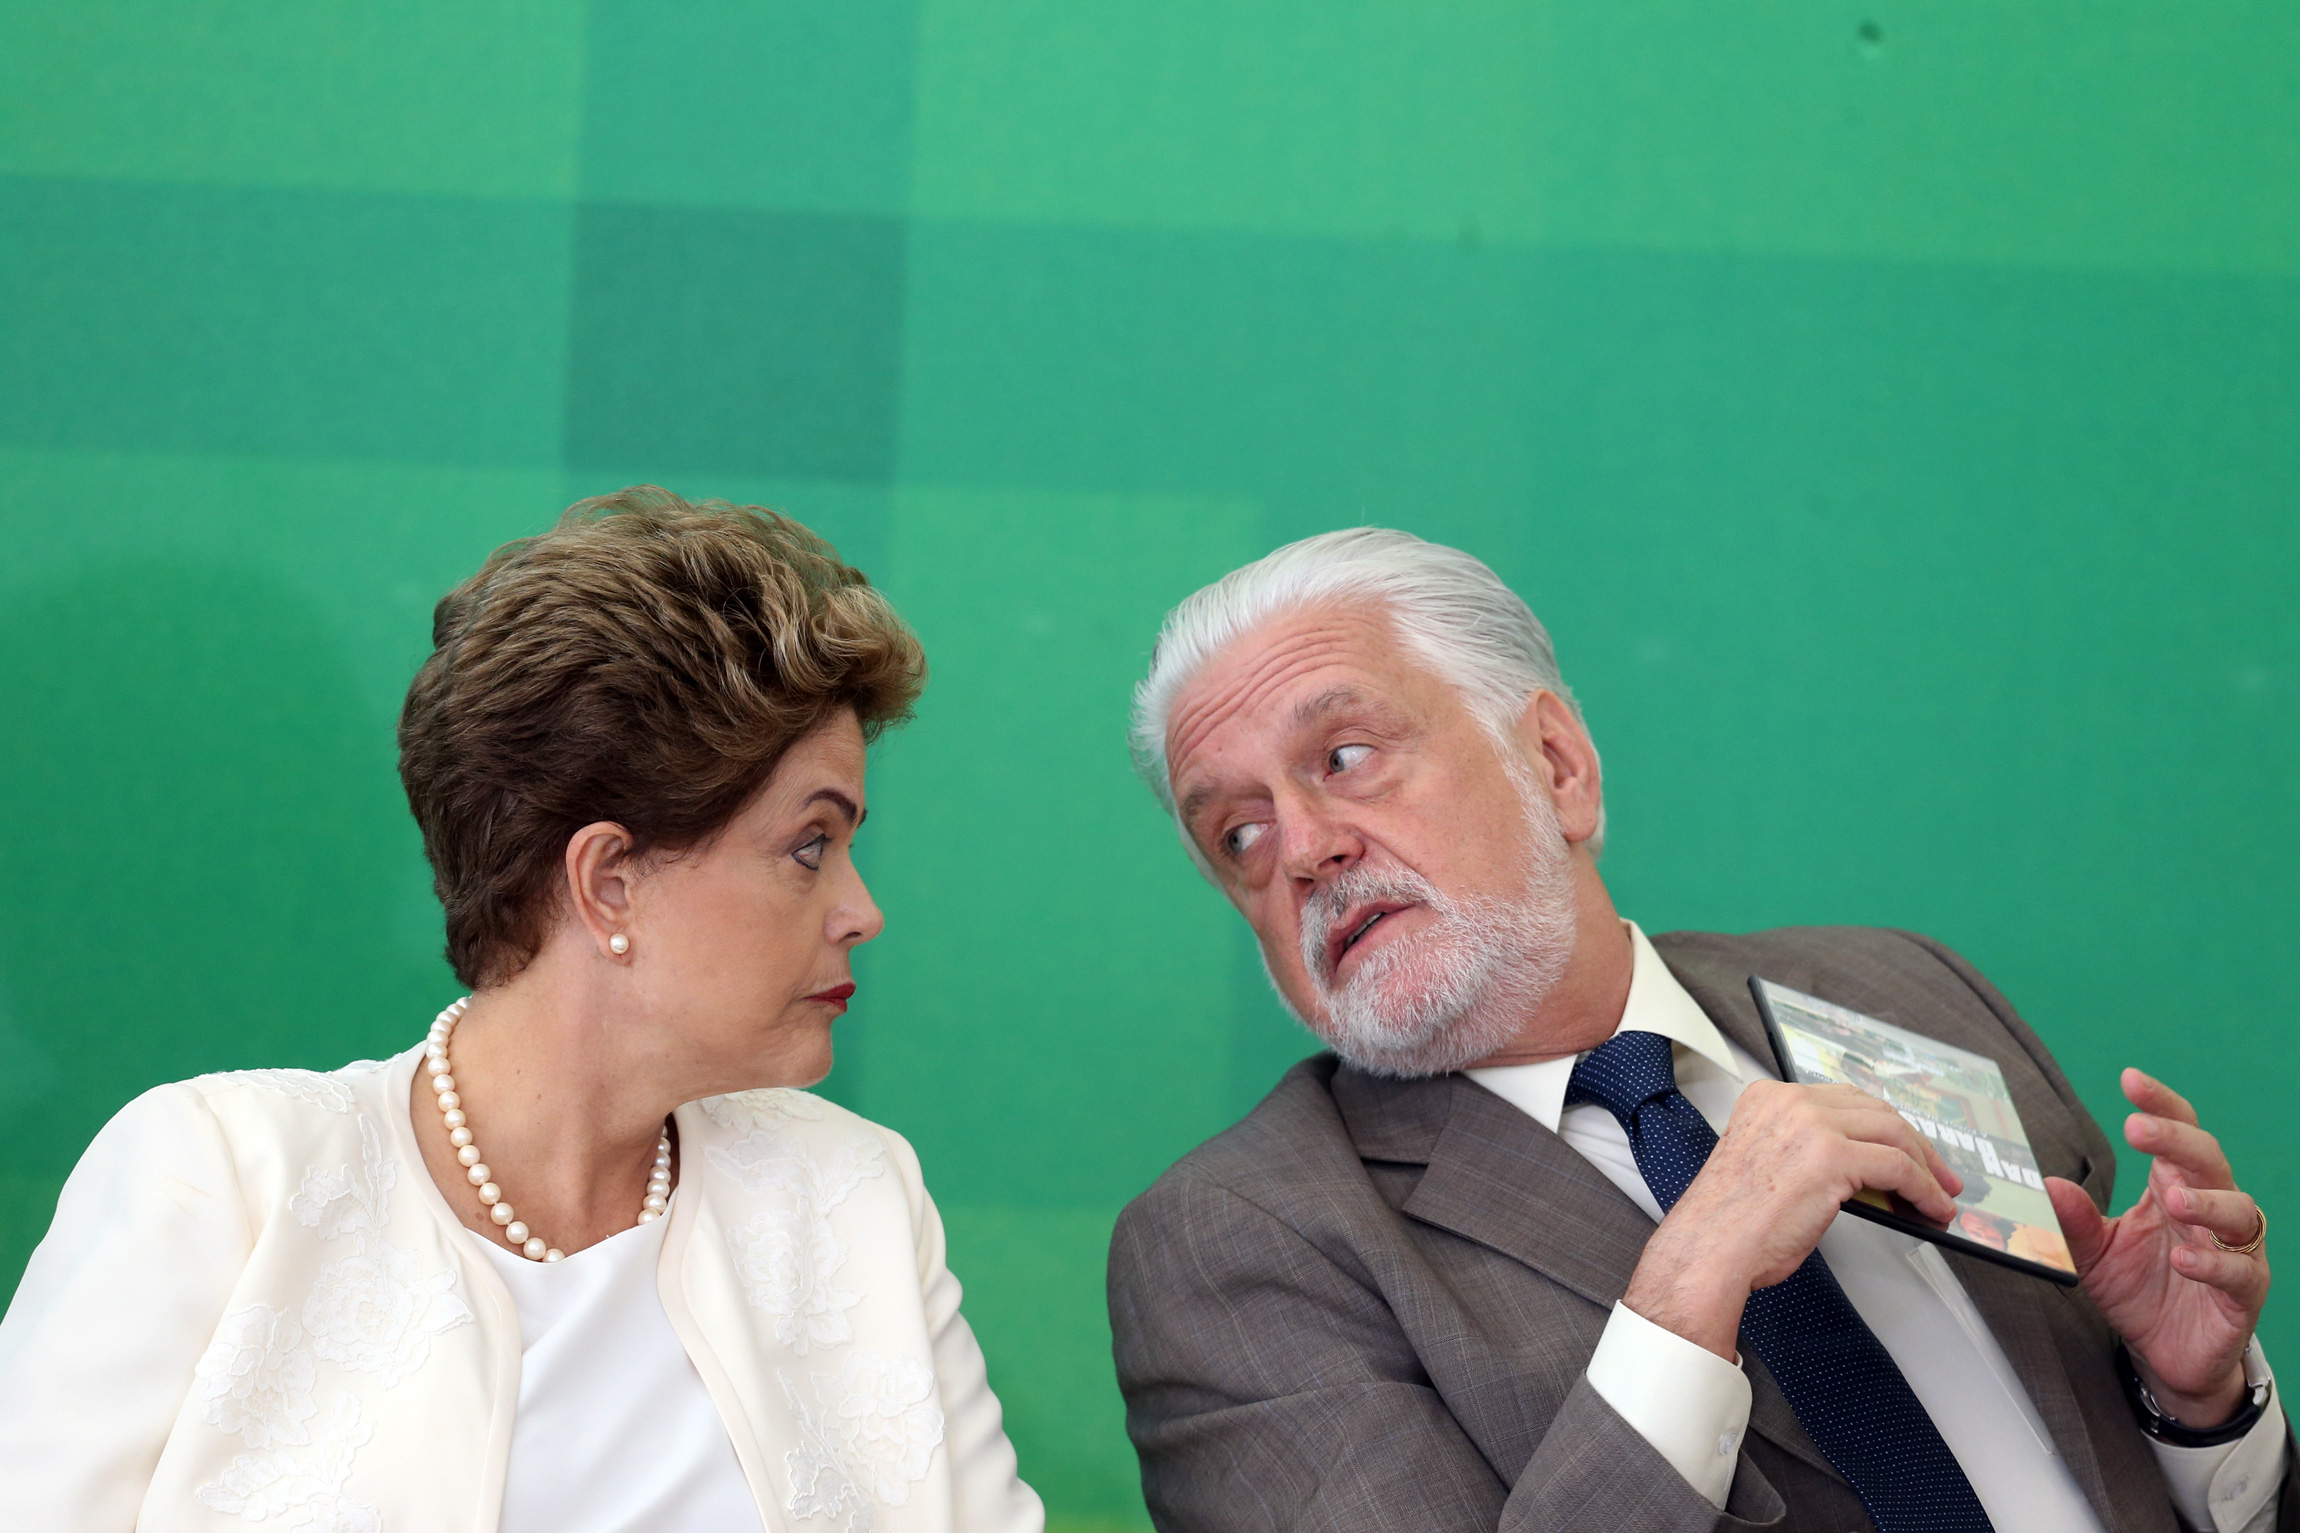 President of Brazil, Dilma Rousseff (L) and the Minister of Governance, Jaques Wagner, commemorative ceremony for the National Black Consciousness Day, at Planalto Palace in Brasilia, capital of Brazil, on November 19, 2015. Photo: ANDRE DUSEK/ESTADAO CONTEUDO (Agencia Estado via AP Images)